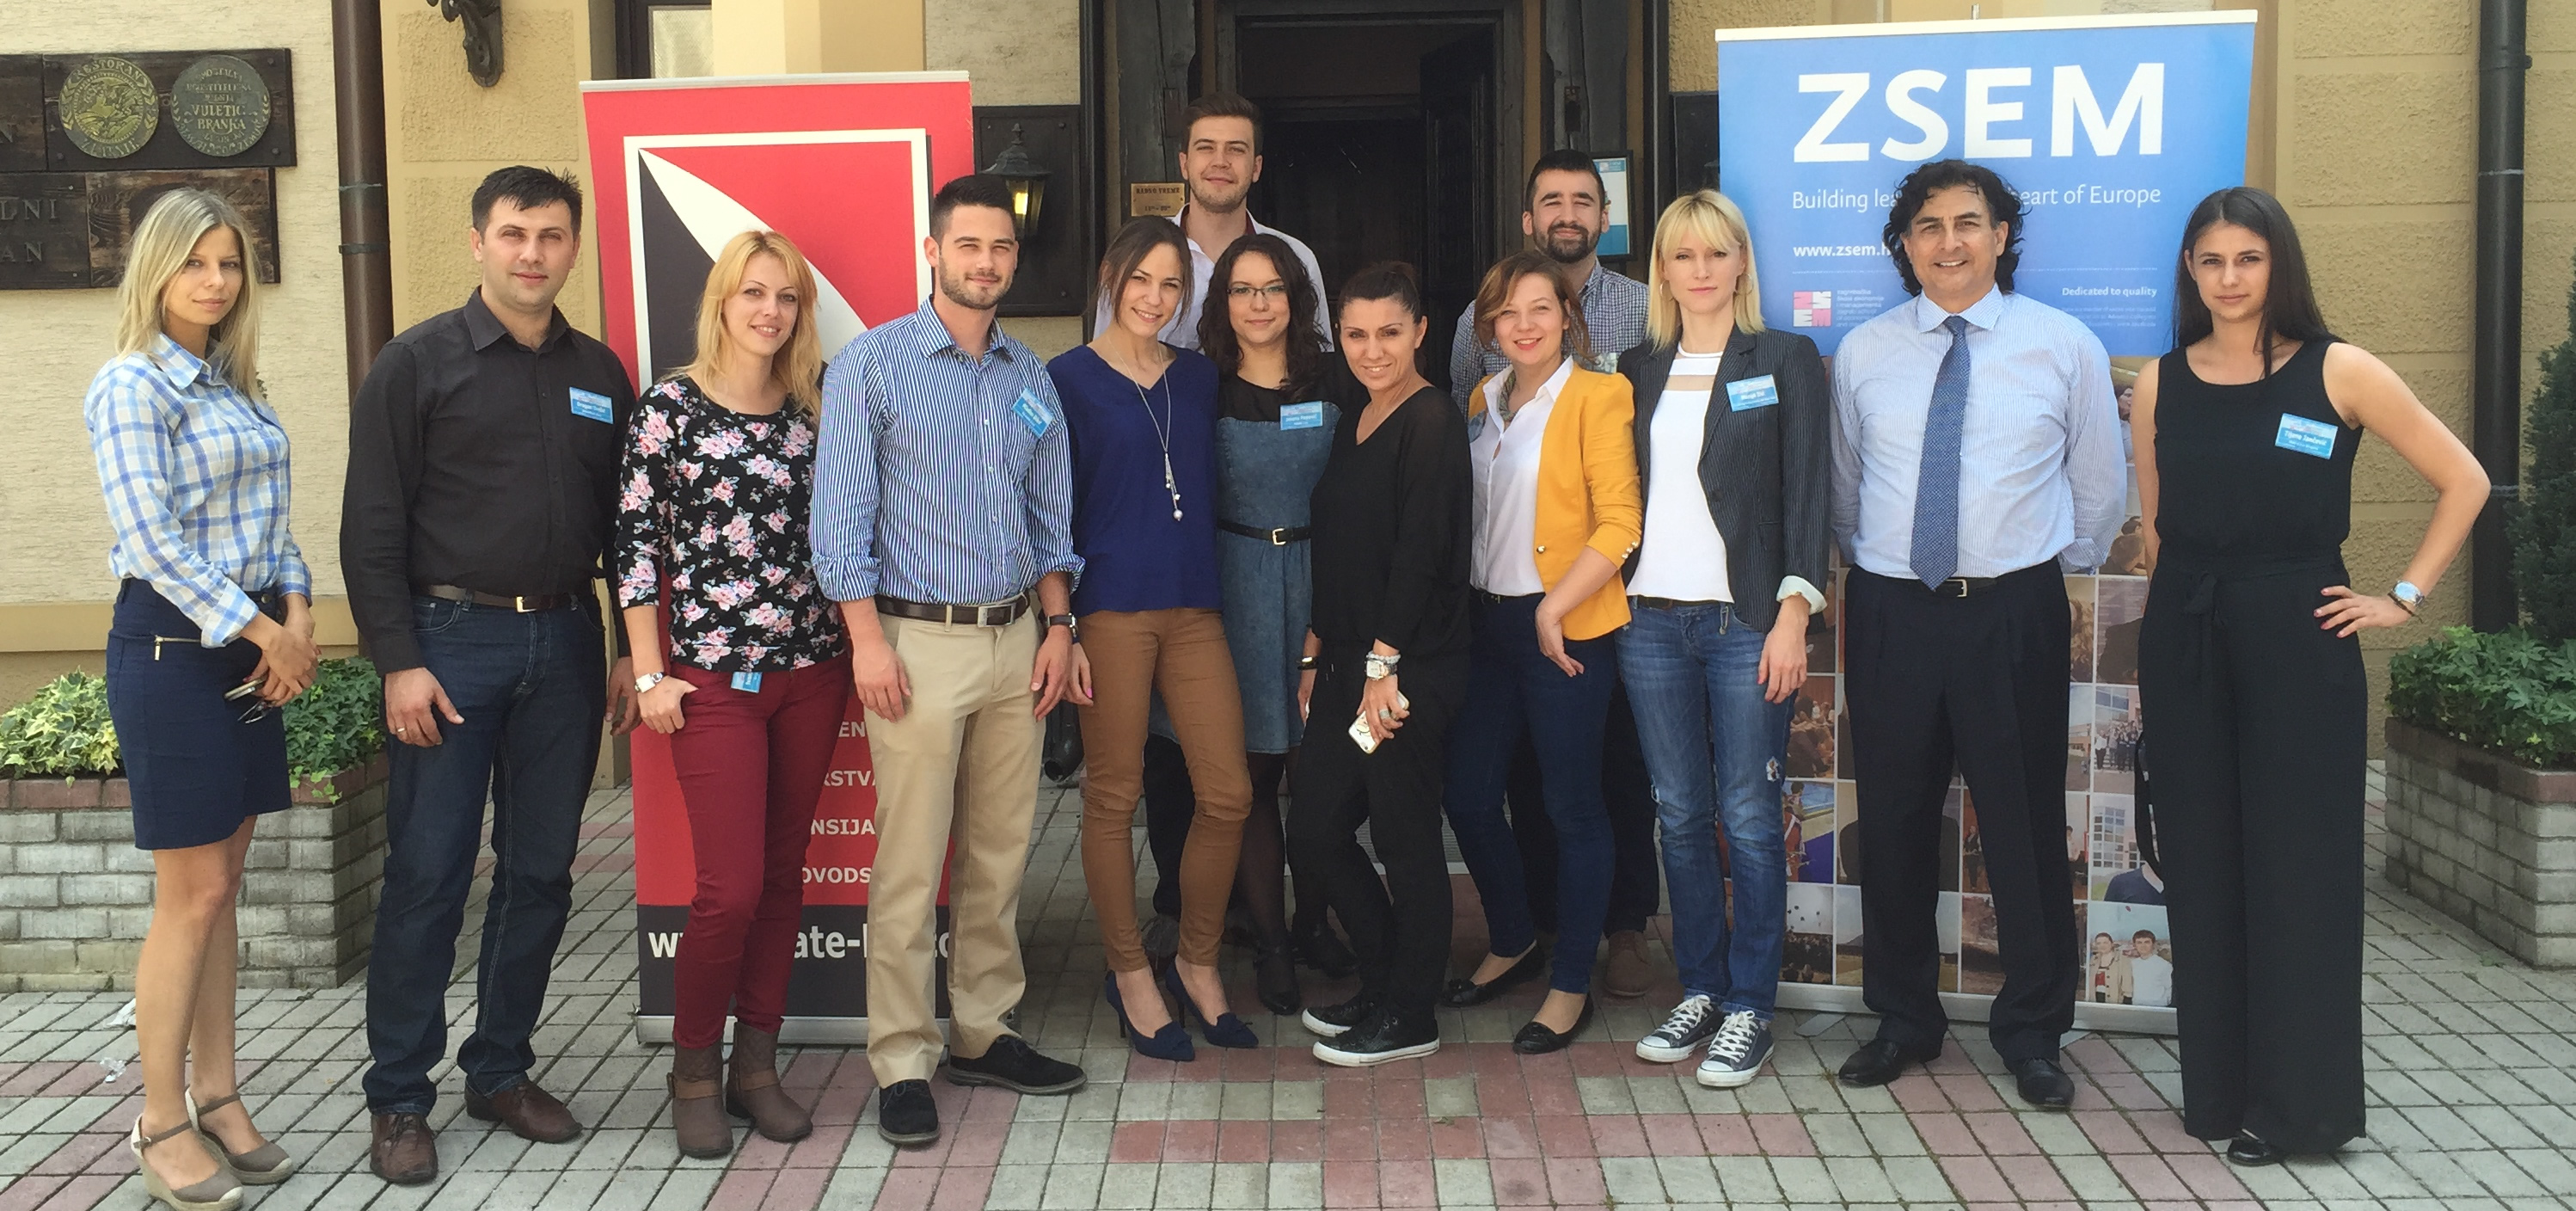 zagreb workshop participants